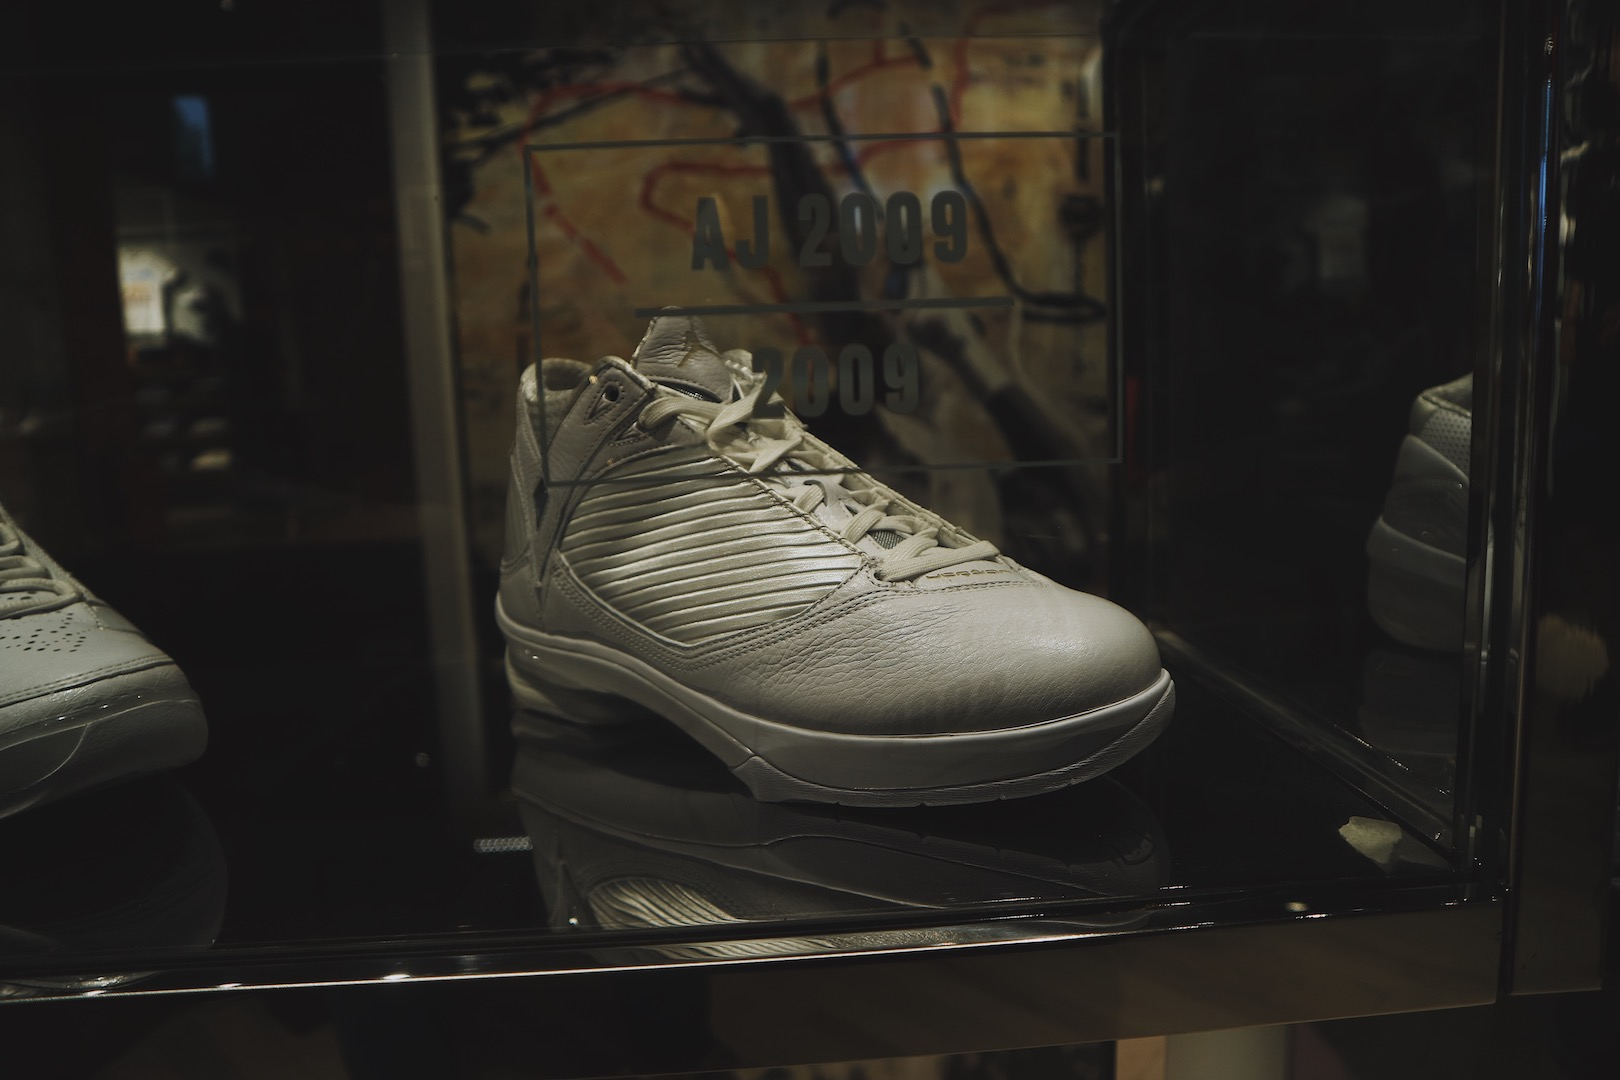 the history of jordan brand At eastbay, we aim to uphold the jordan history and brand vision by offering you some of the greatest jordan styles available.